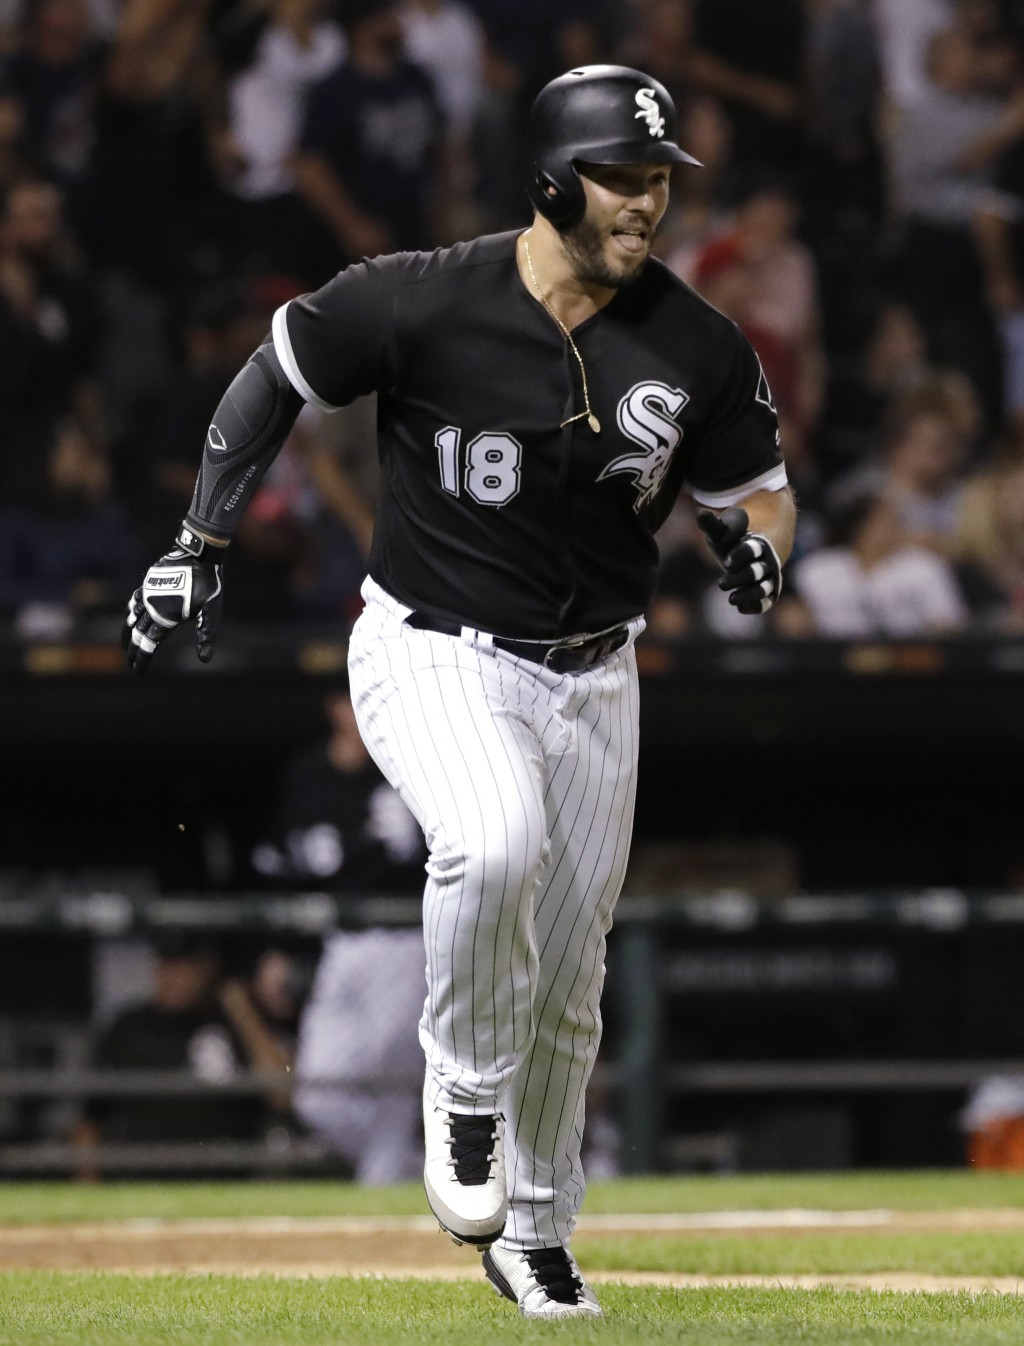 Chicago White Sox's Daniel Palka rounds the bases after hitting a home run against the Cleveland Indians during the ninth inning of a baseball game Fr